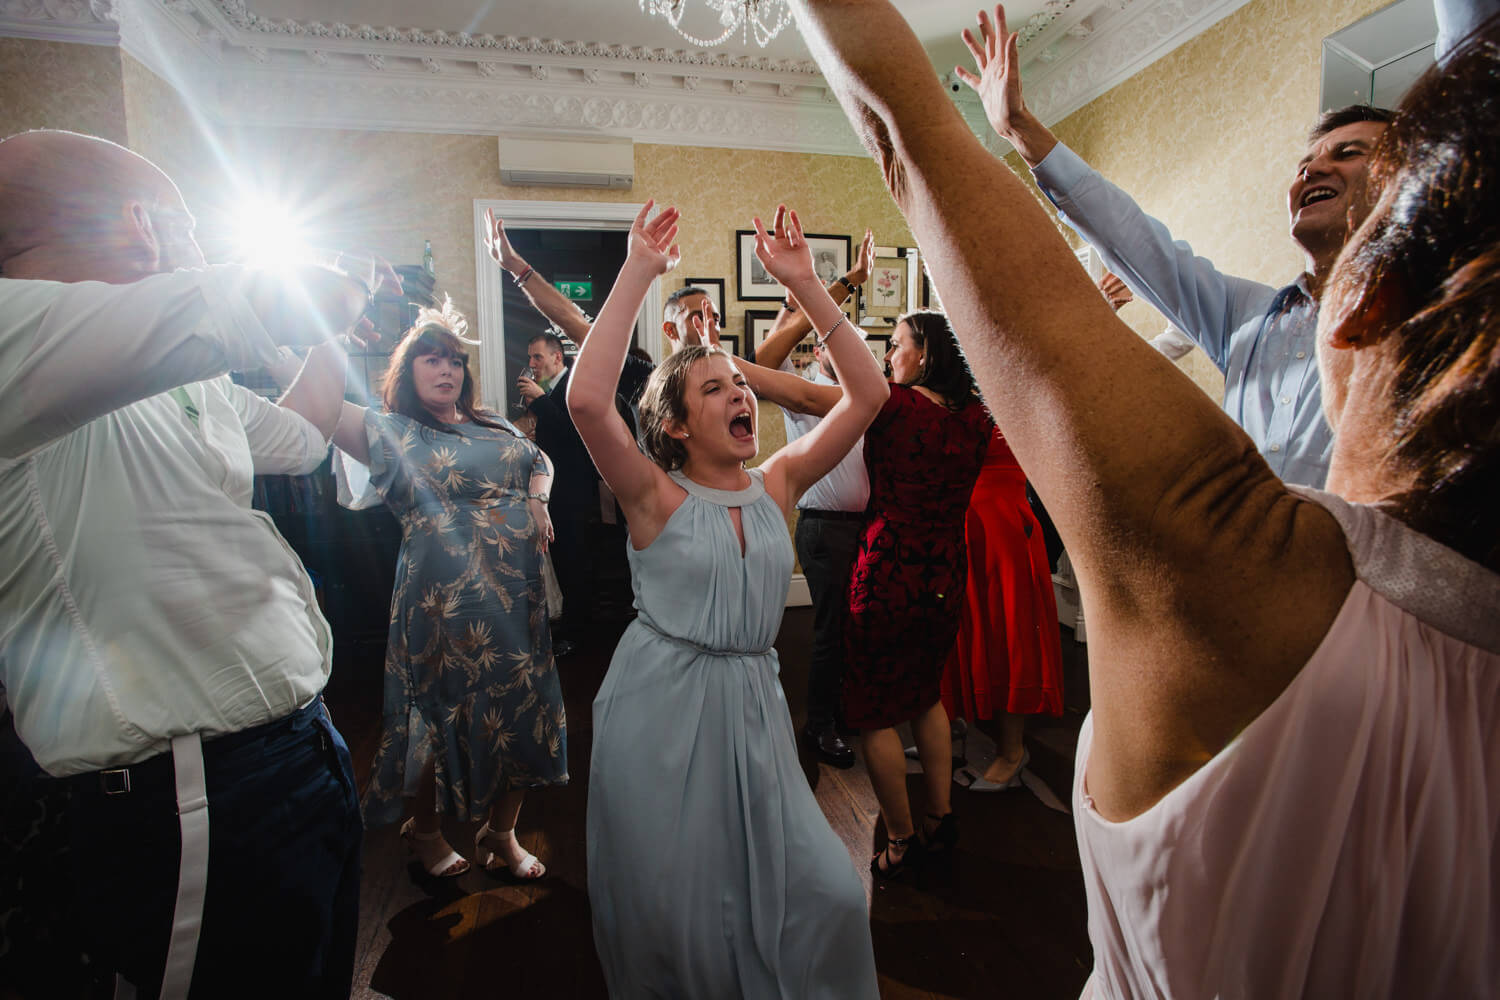 bridesmaids all dancing with hands in air as flash lights them up at correct exposure